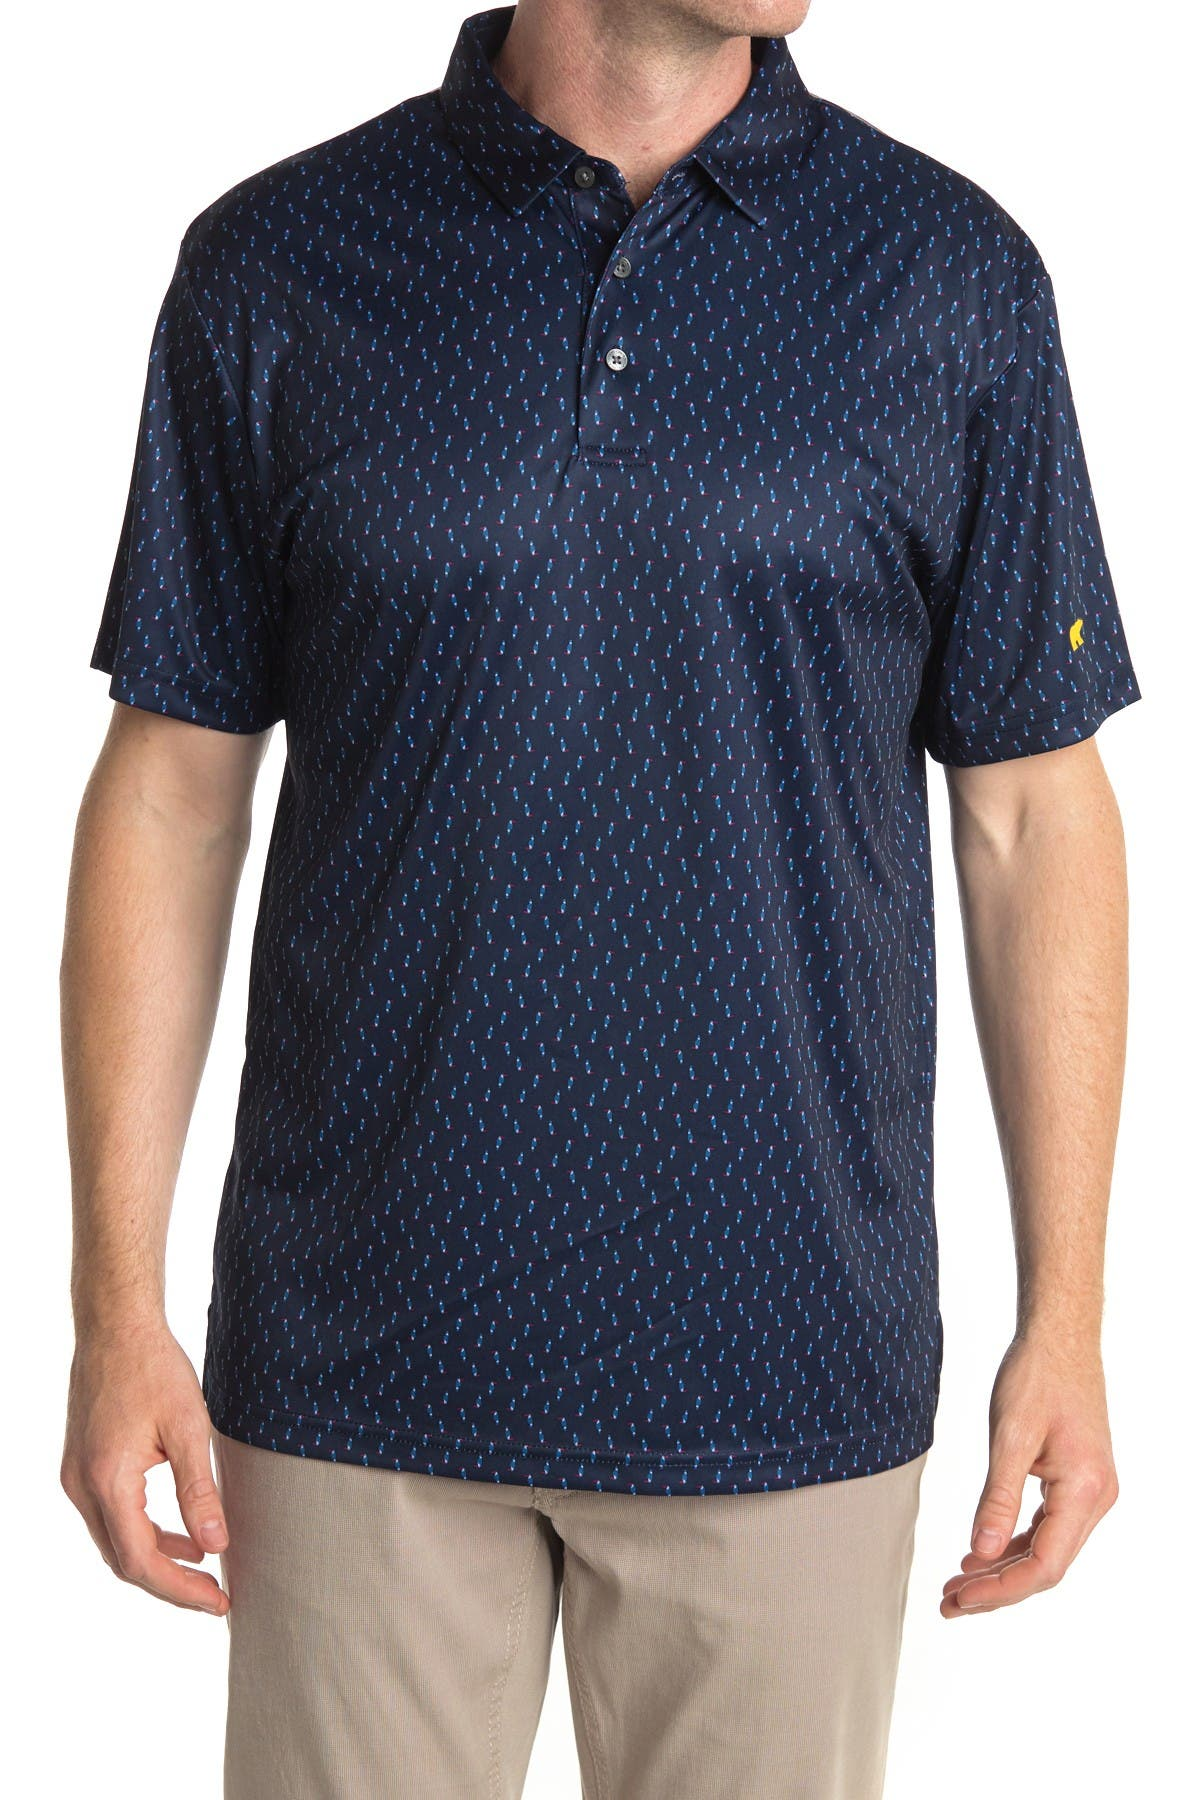 Image of Jack Nicklaus Short Sleeve Toucan Print Printed Polo